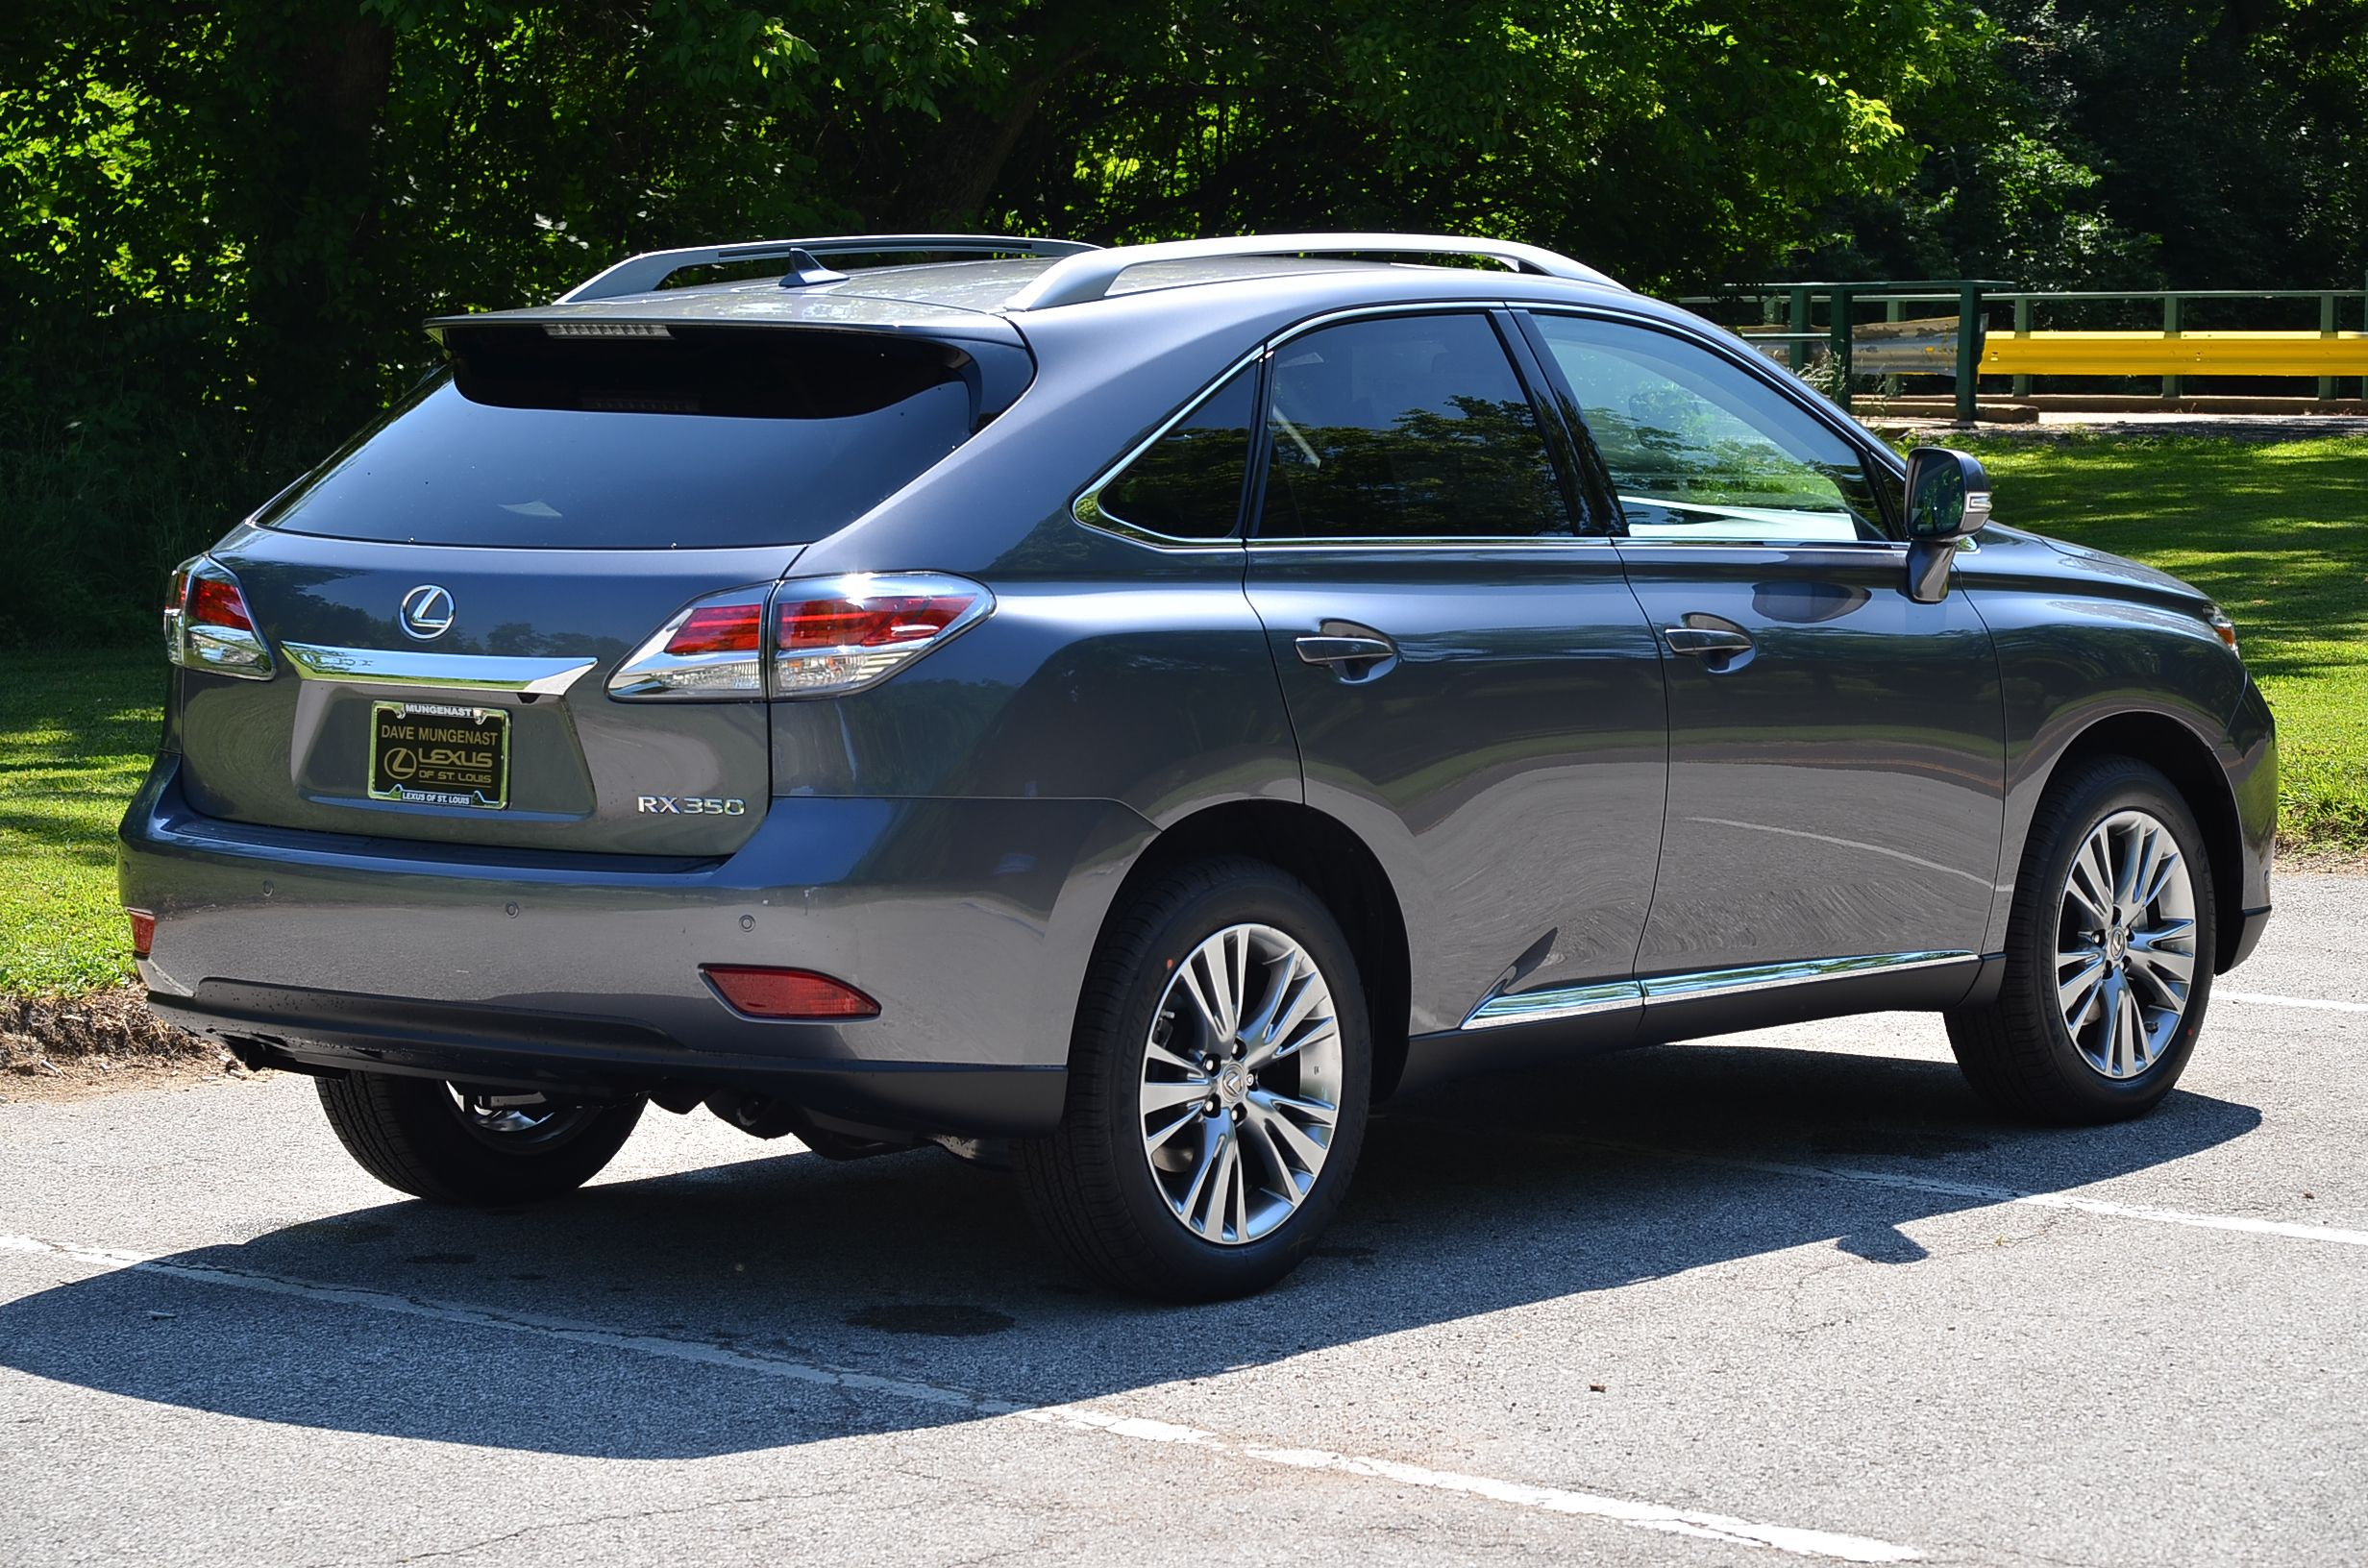 span lexus used auto rx weekly sale base kernersville for the inventory nc new dodge